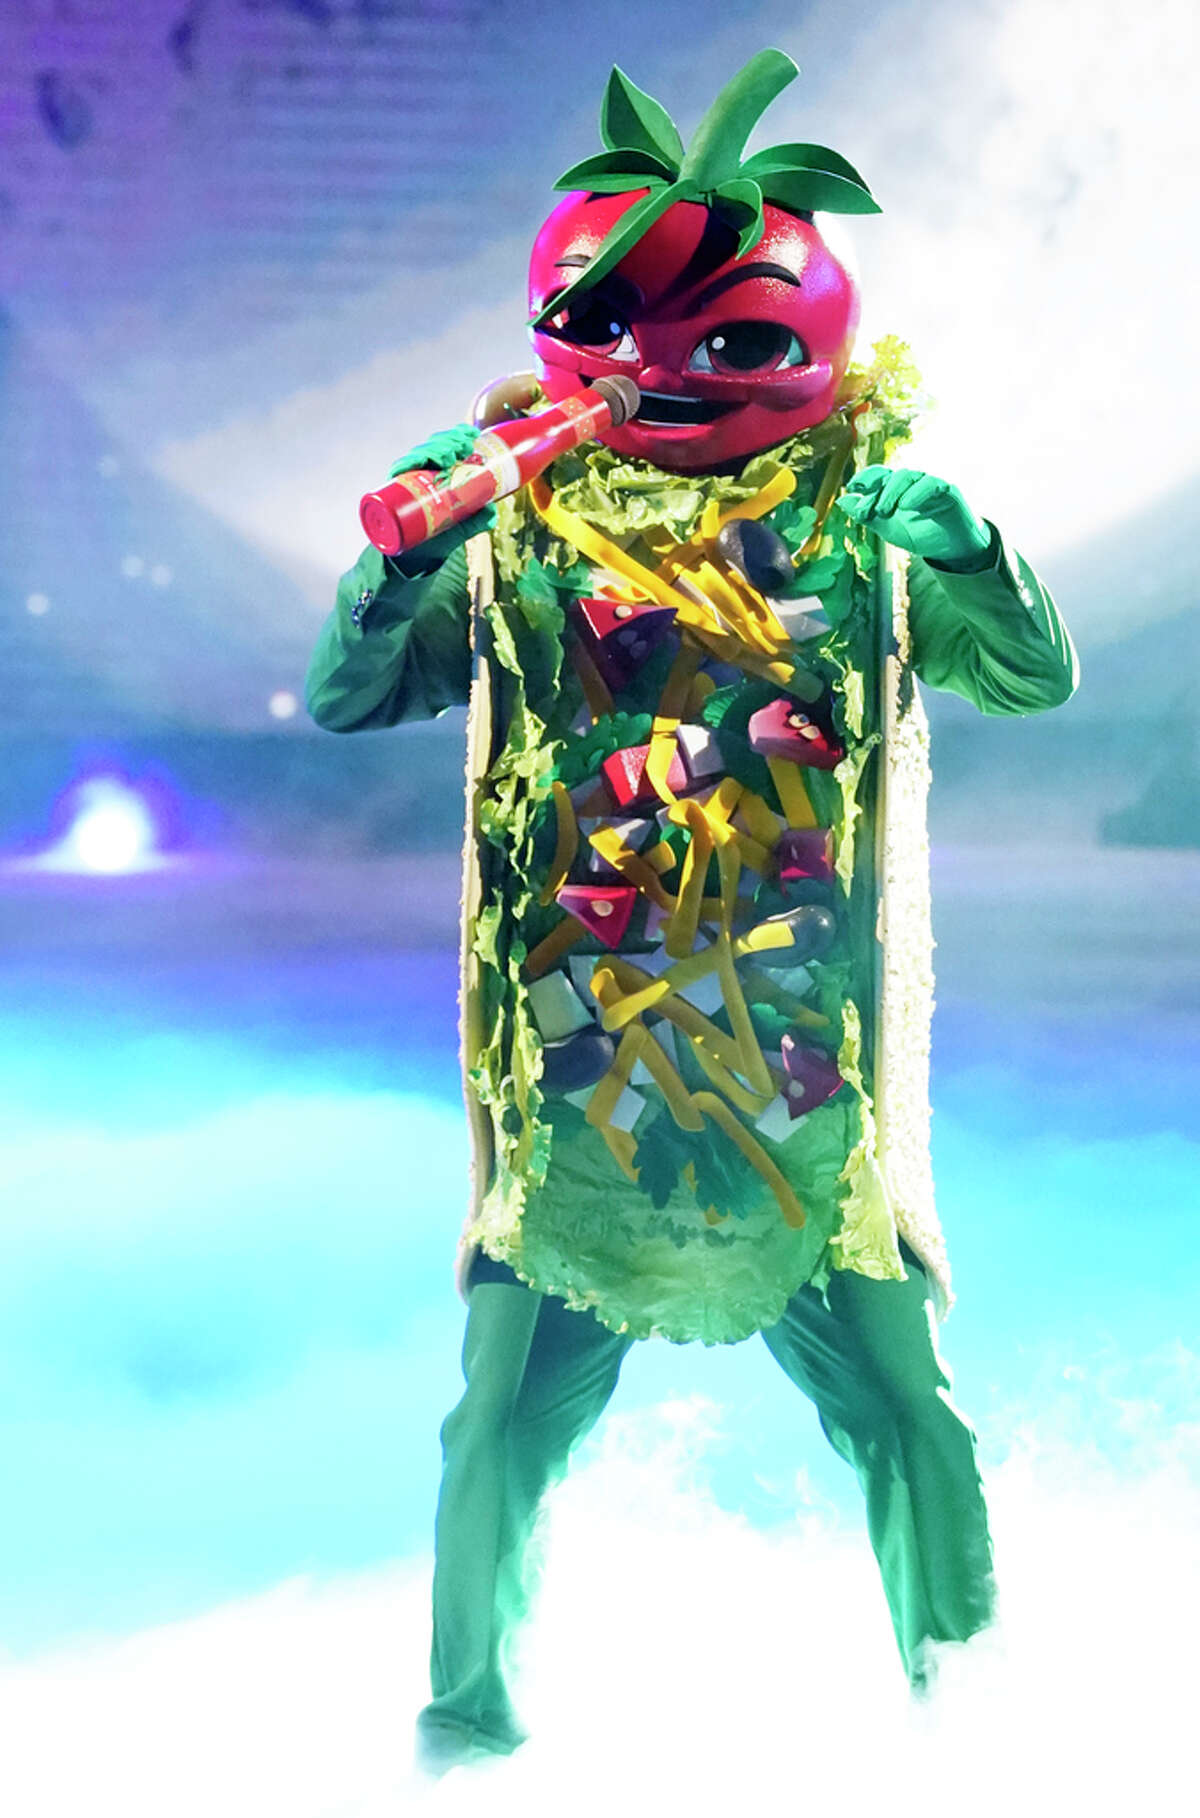 The Masked Singer has been a hit for FOX and features celebrities in disguise singing for votes.